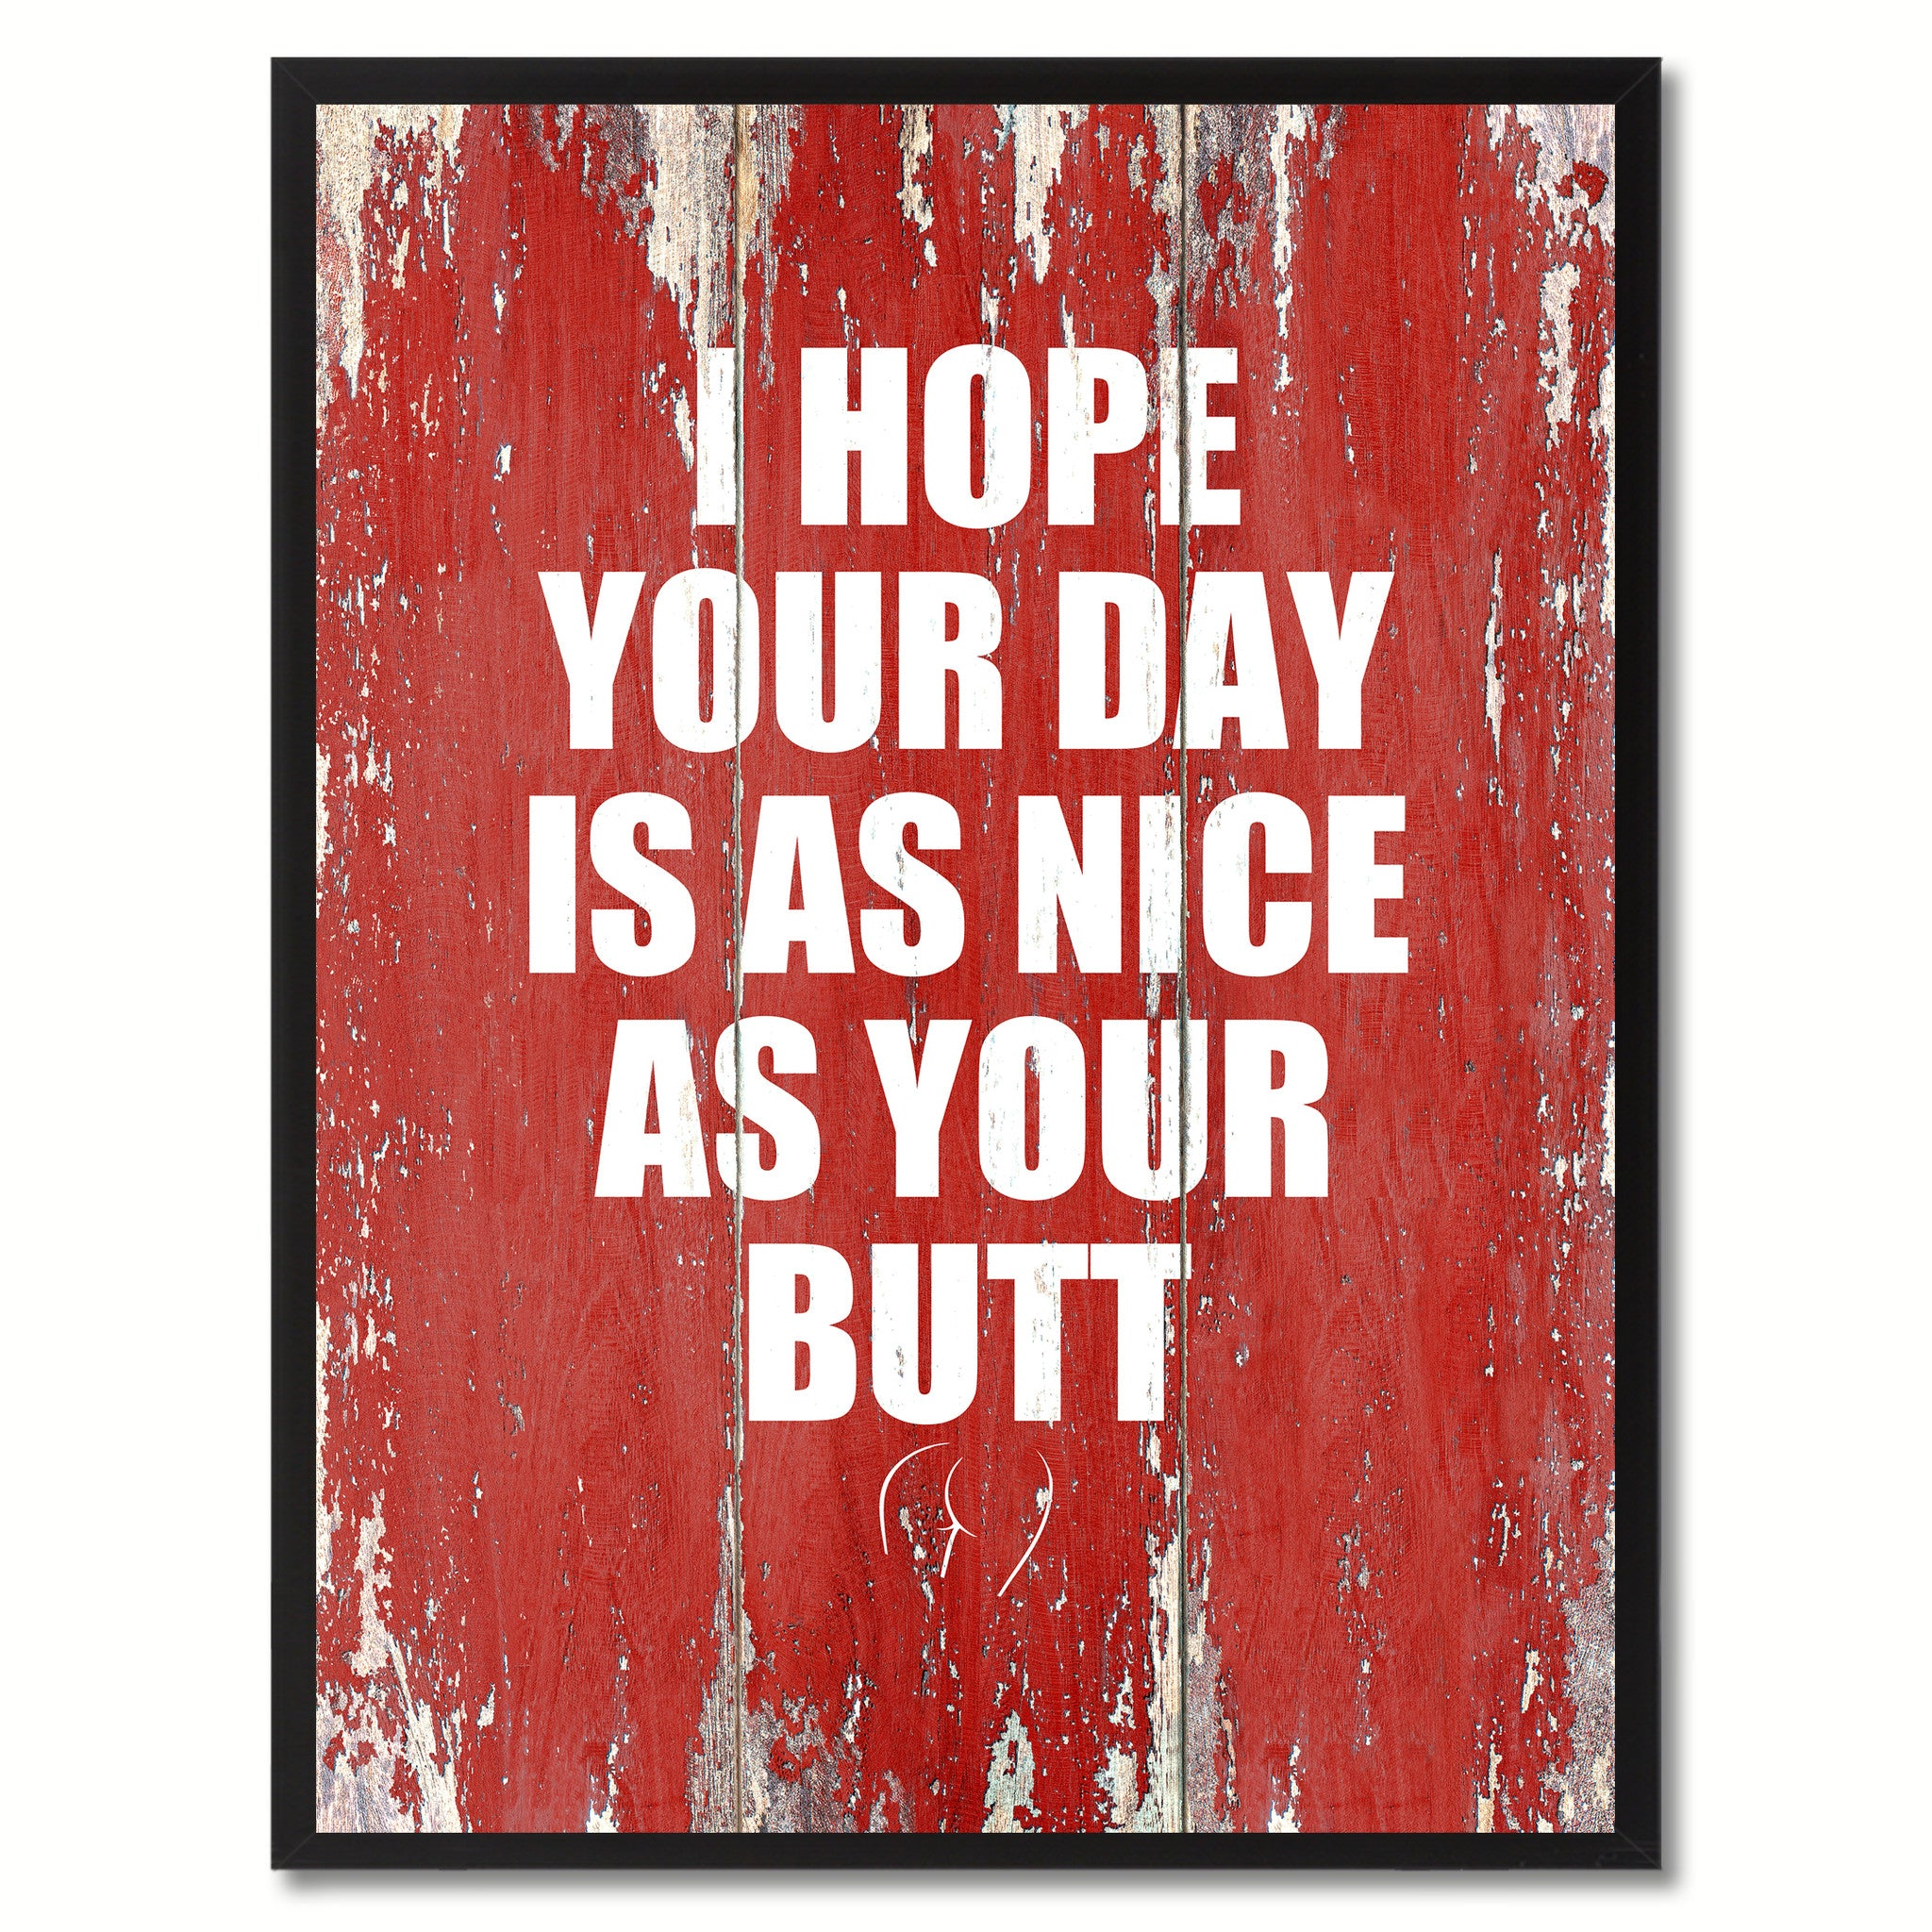 I Hope Your Day Is As Nice As Your Butt Saying Canvas Print, Black Picture Frame Home Decor Wall Art Gifts